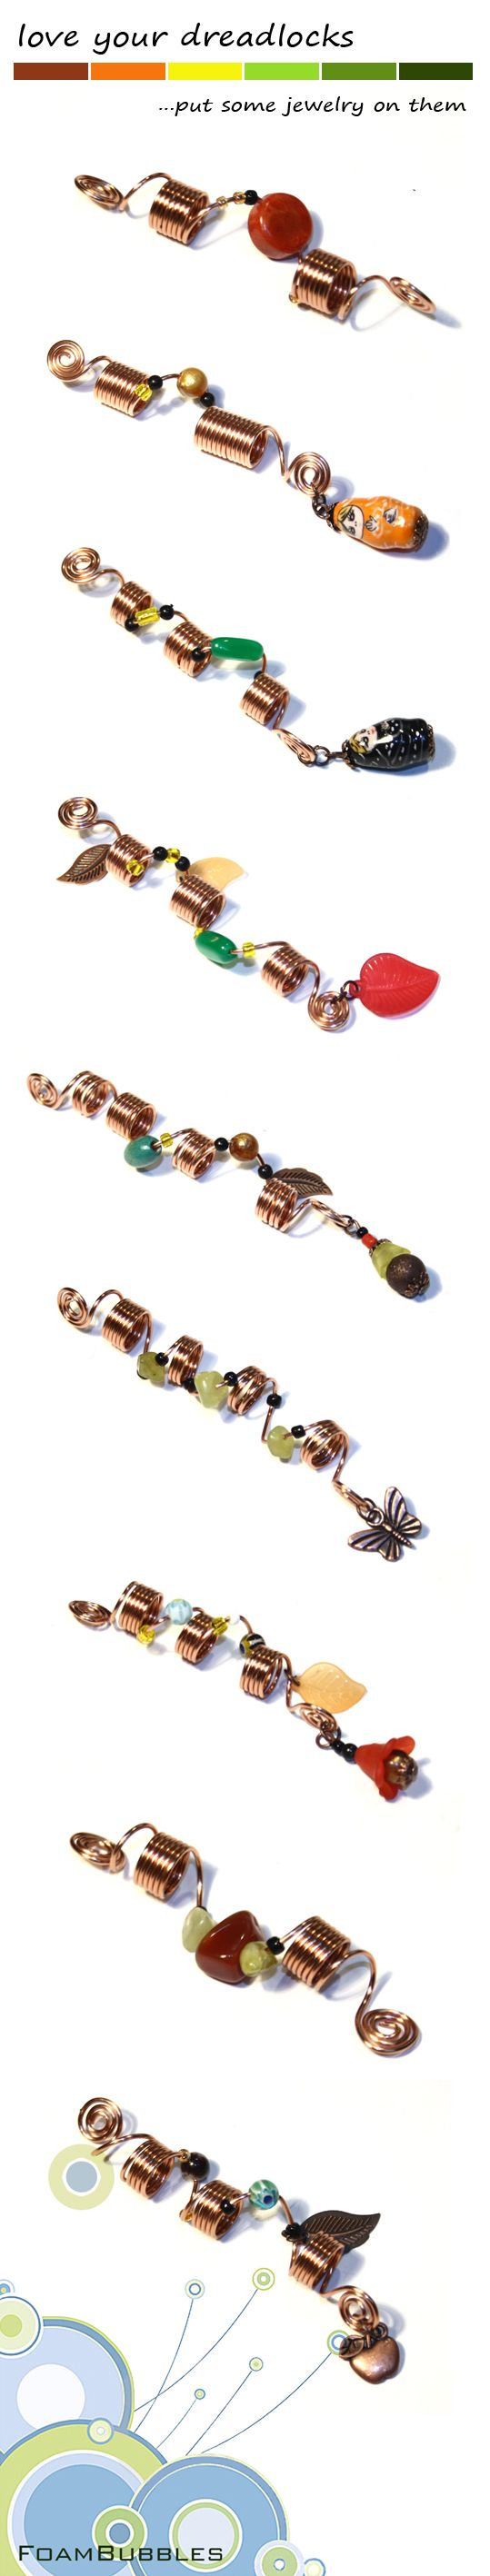 best try diy images on pinterest dreadlock jewelry dreadlocks